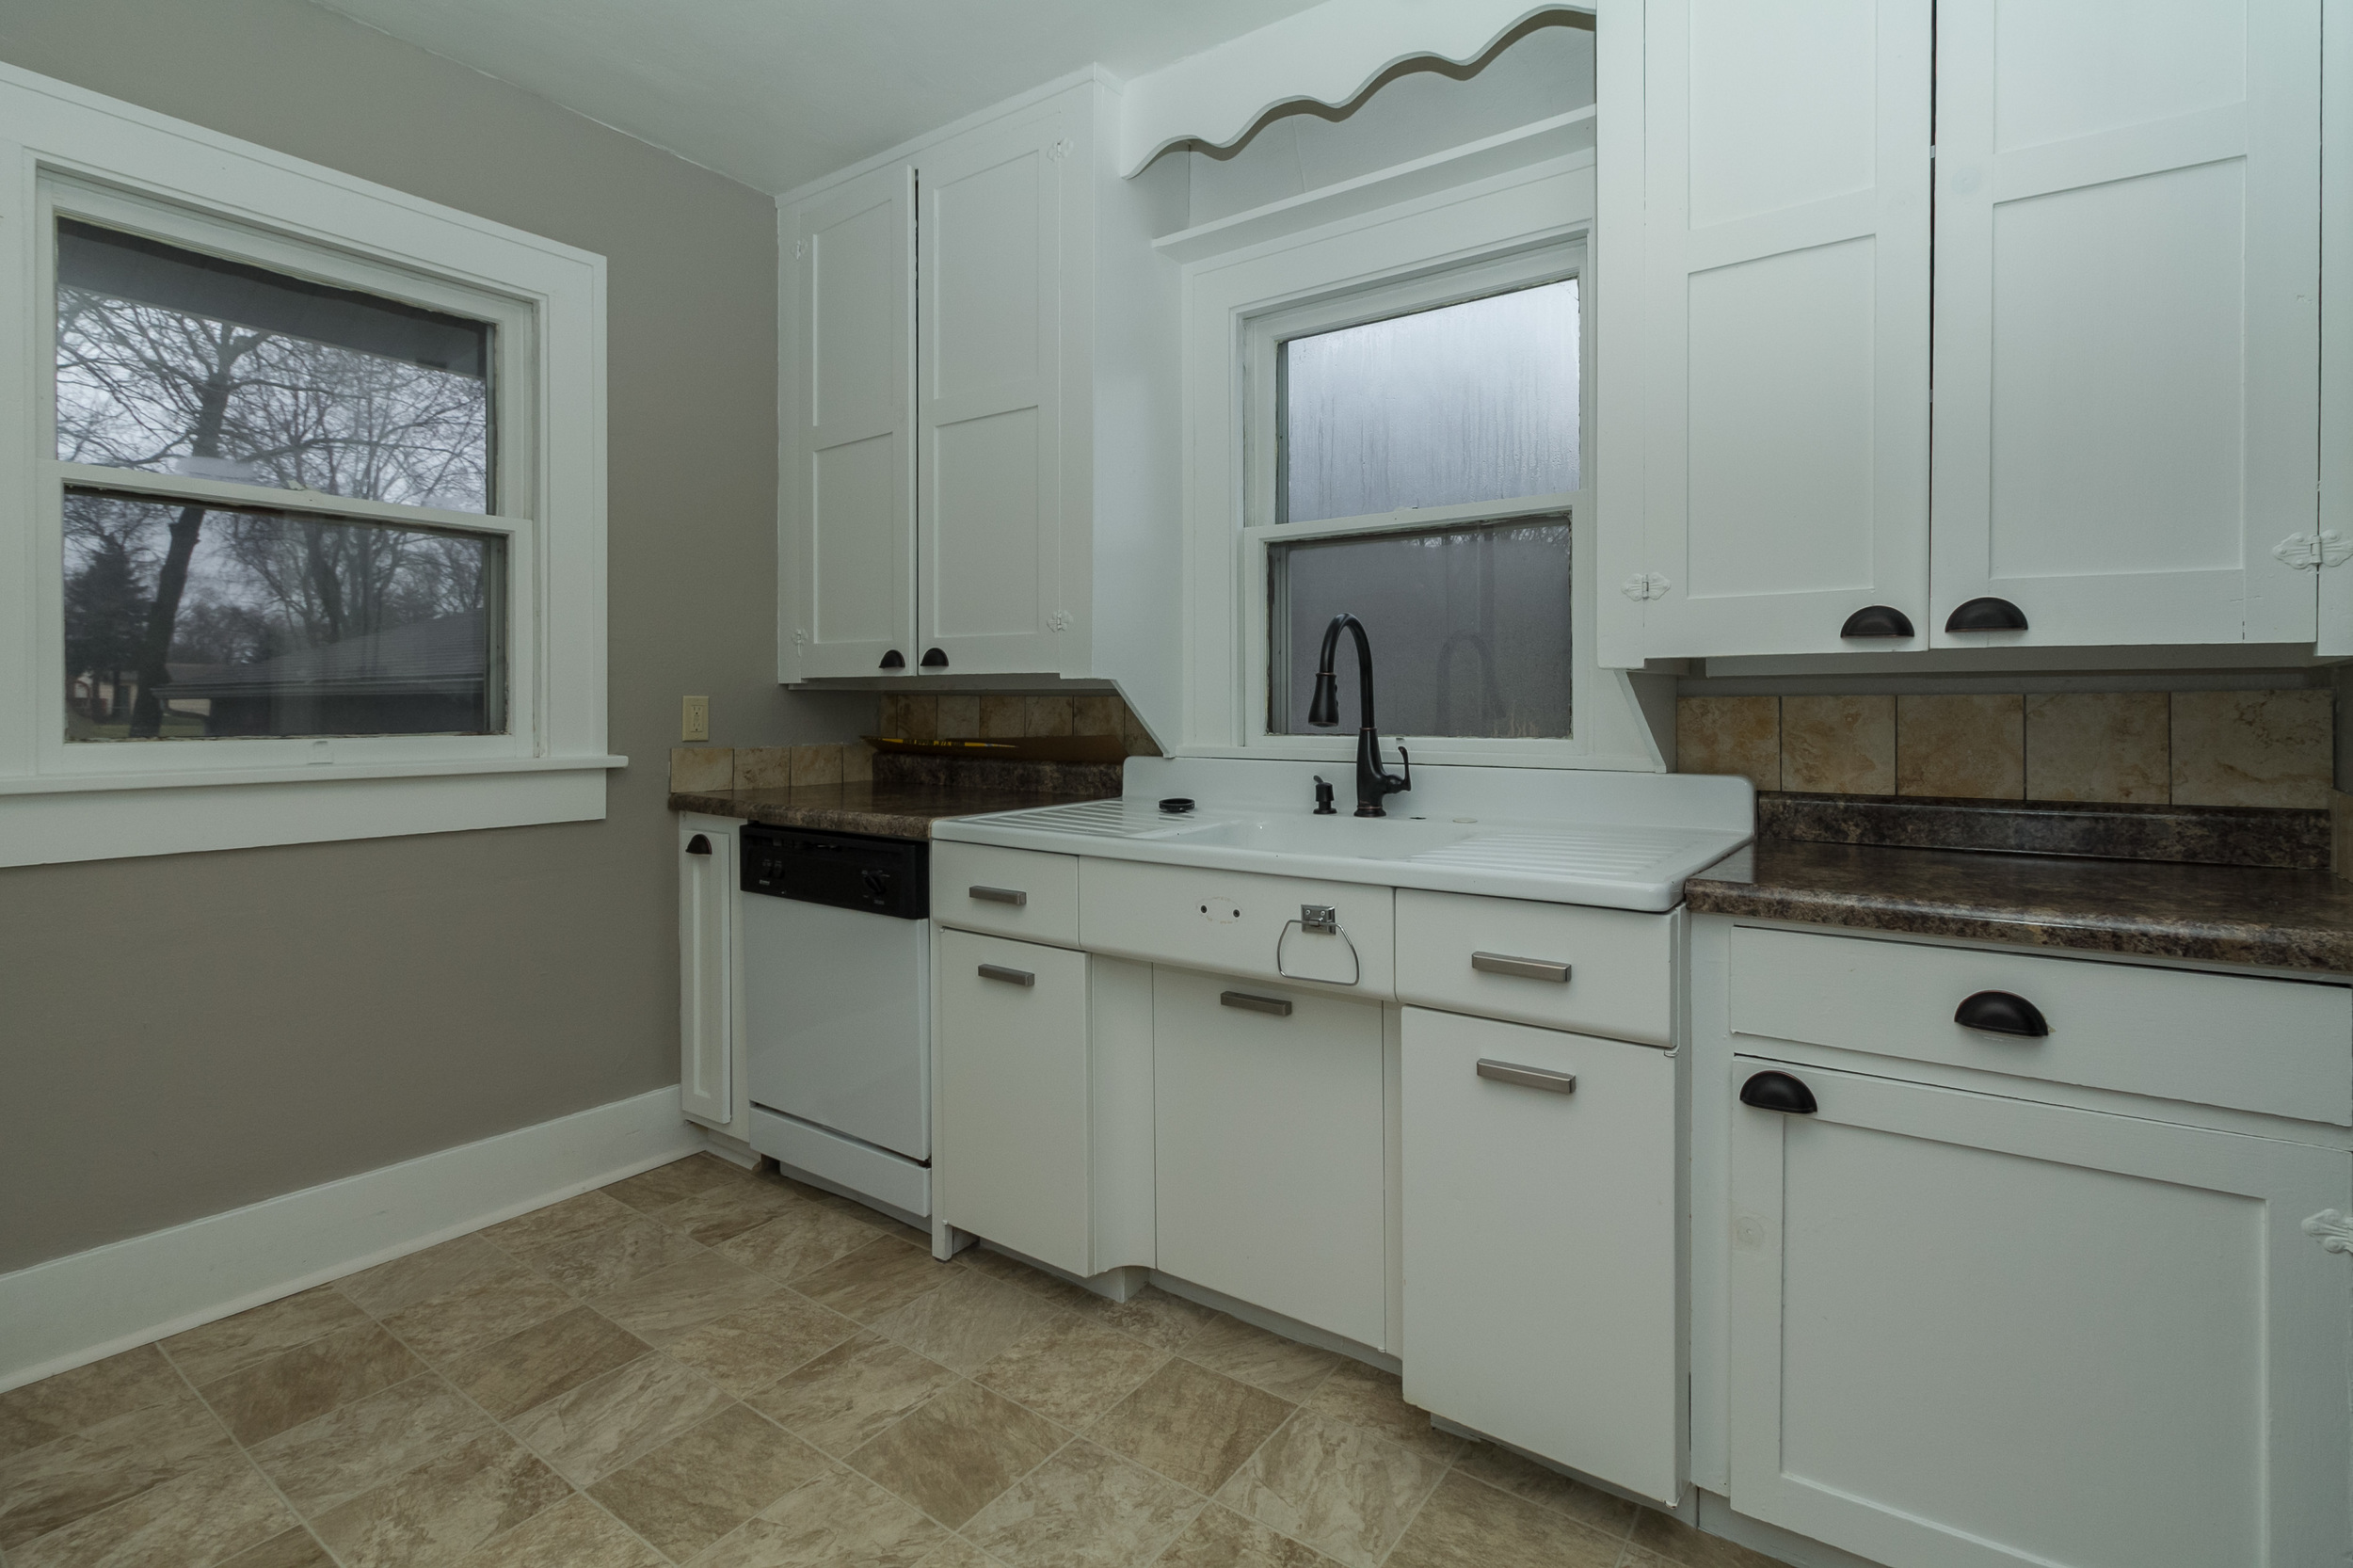 We replaced the countertops, added a dishwasher, hardware, faucet, flooring, painted,and kept the vanity and cabinets.